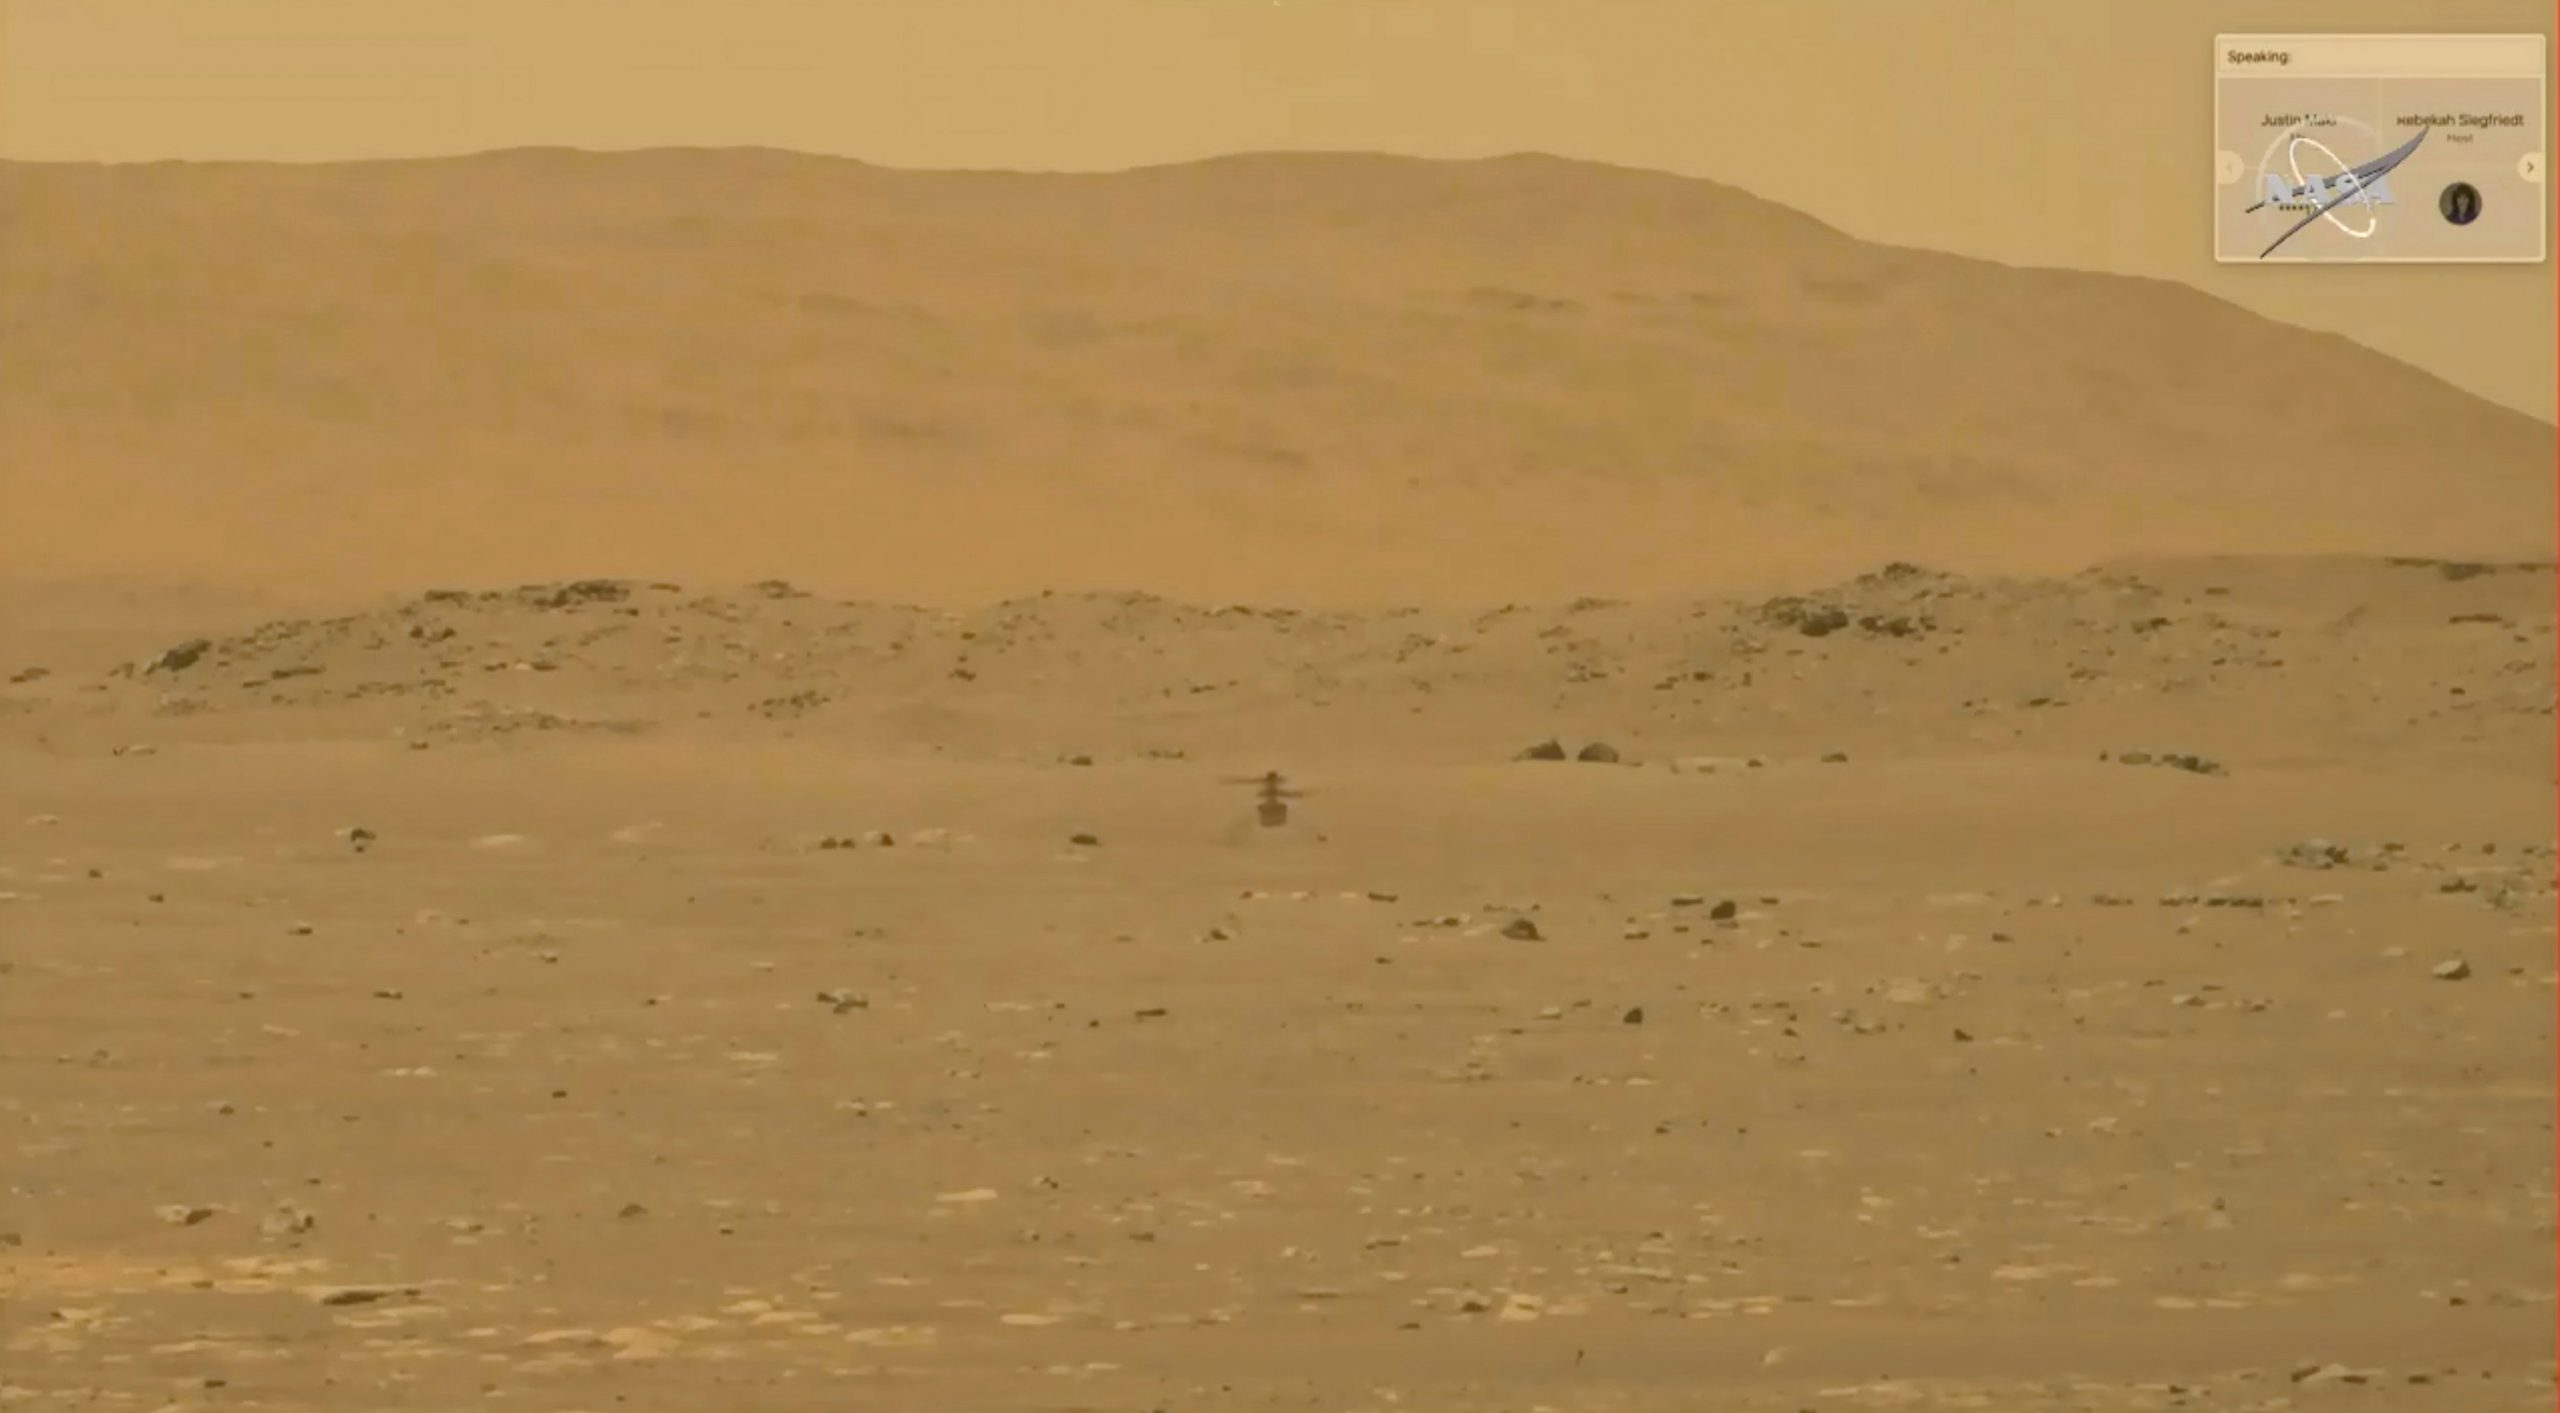 New color photos taken by a NASA ingenious helicopter on Mars